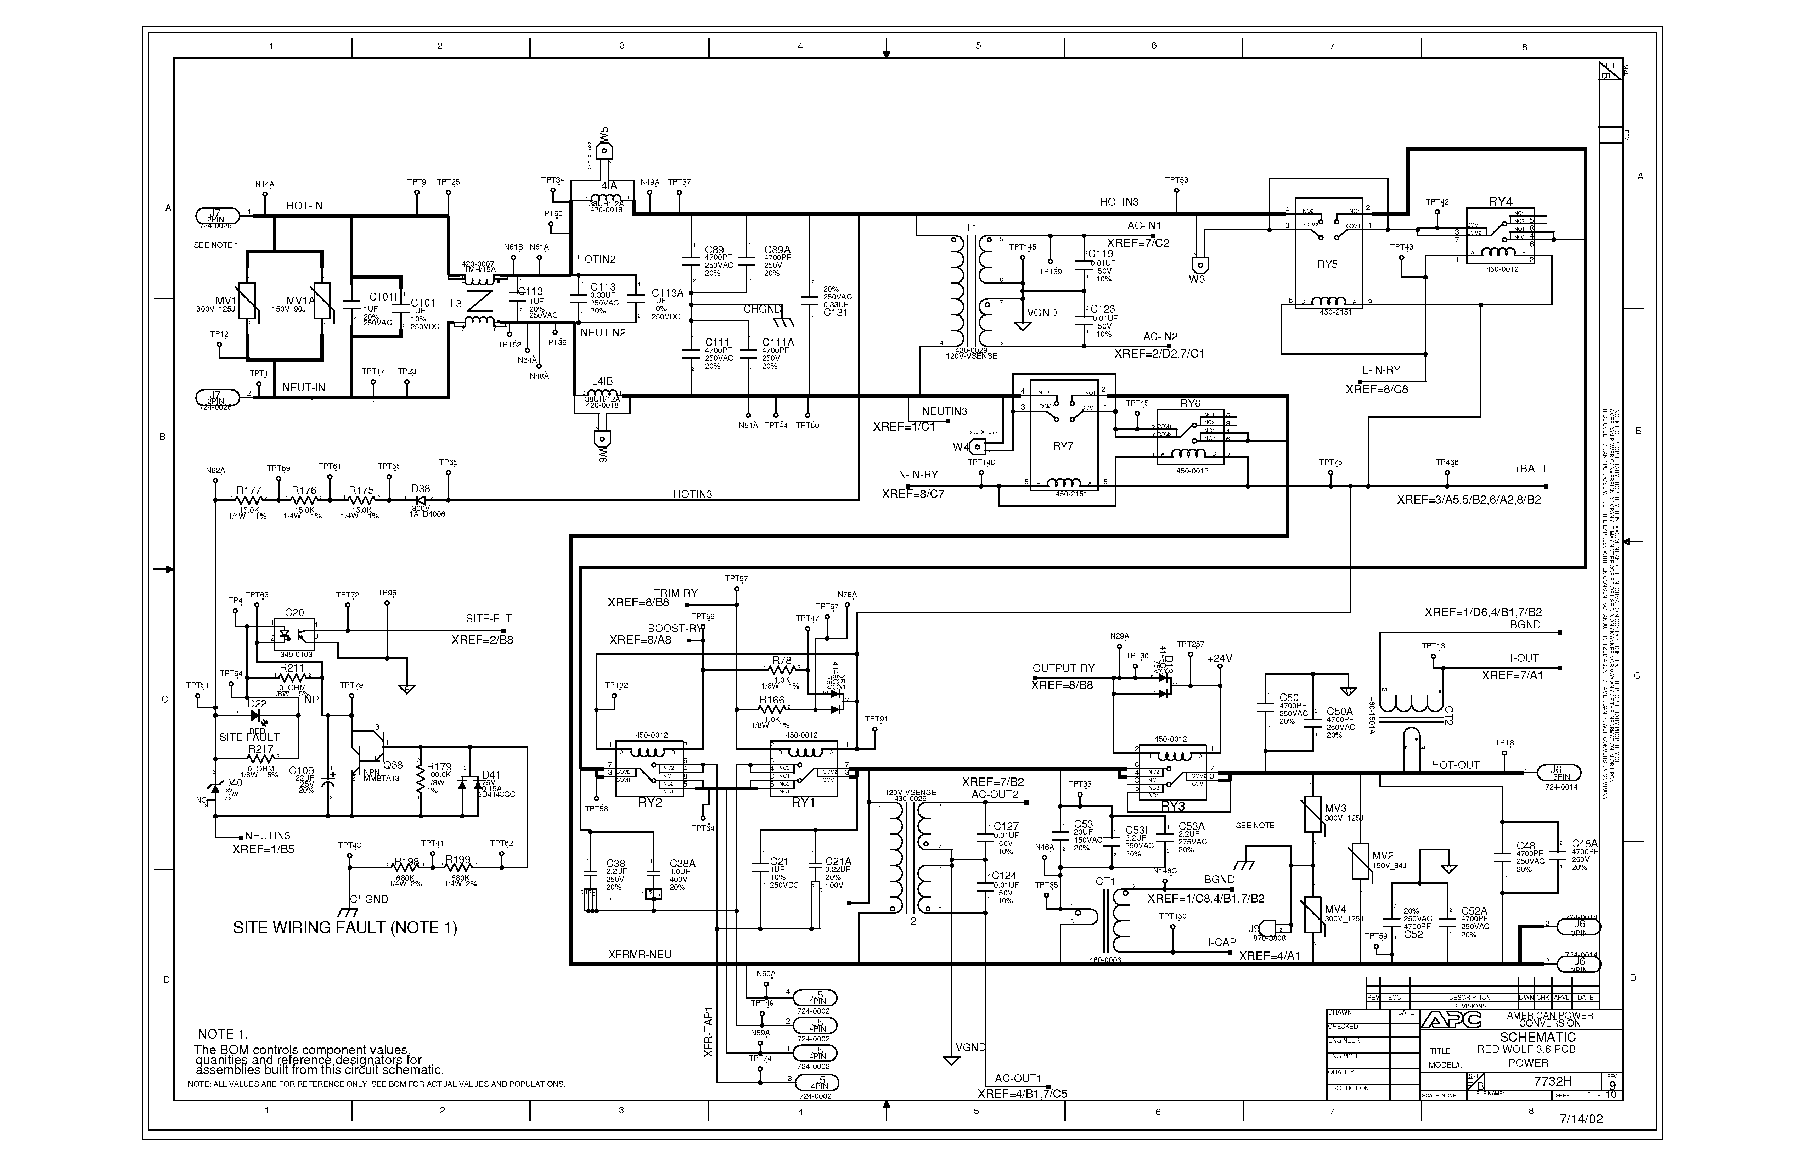 Wire Schematic For Ups Rs 1000